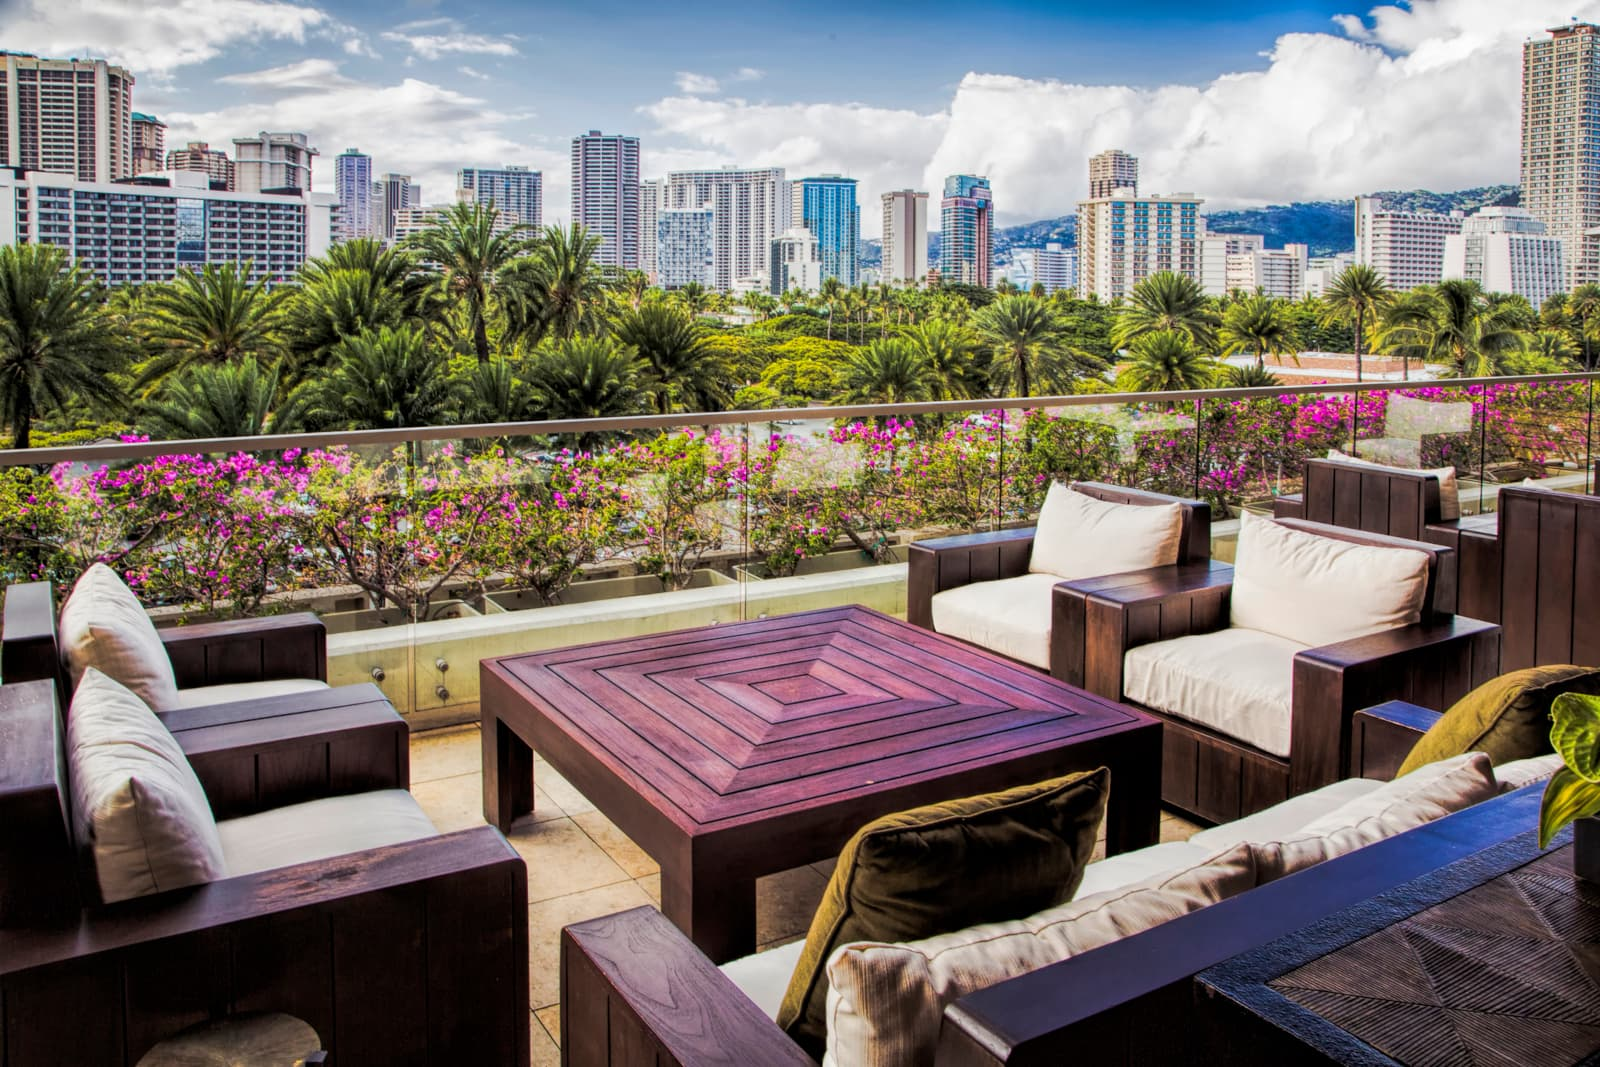 Coffee table and chairs in a lounge area looking over Honolulu